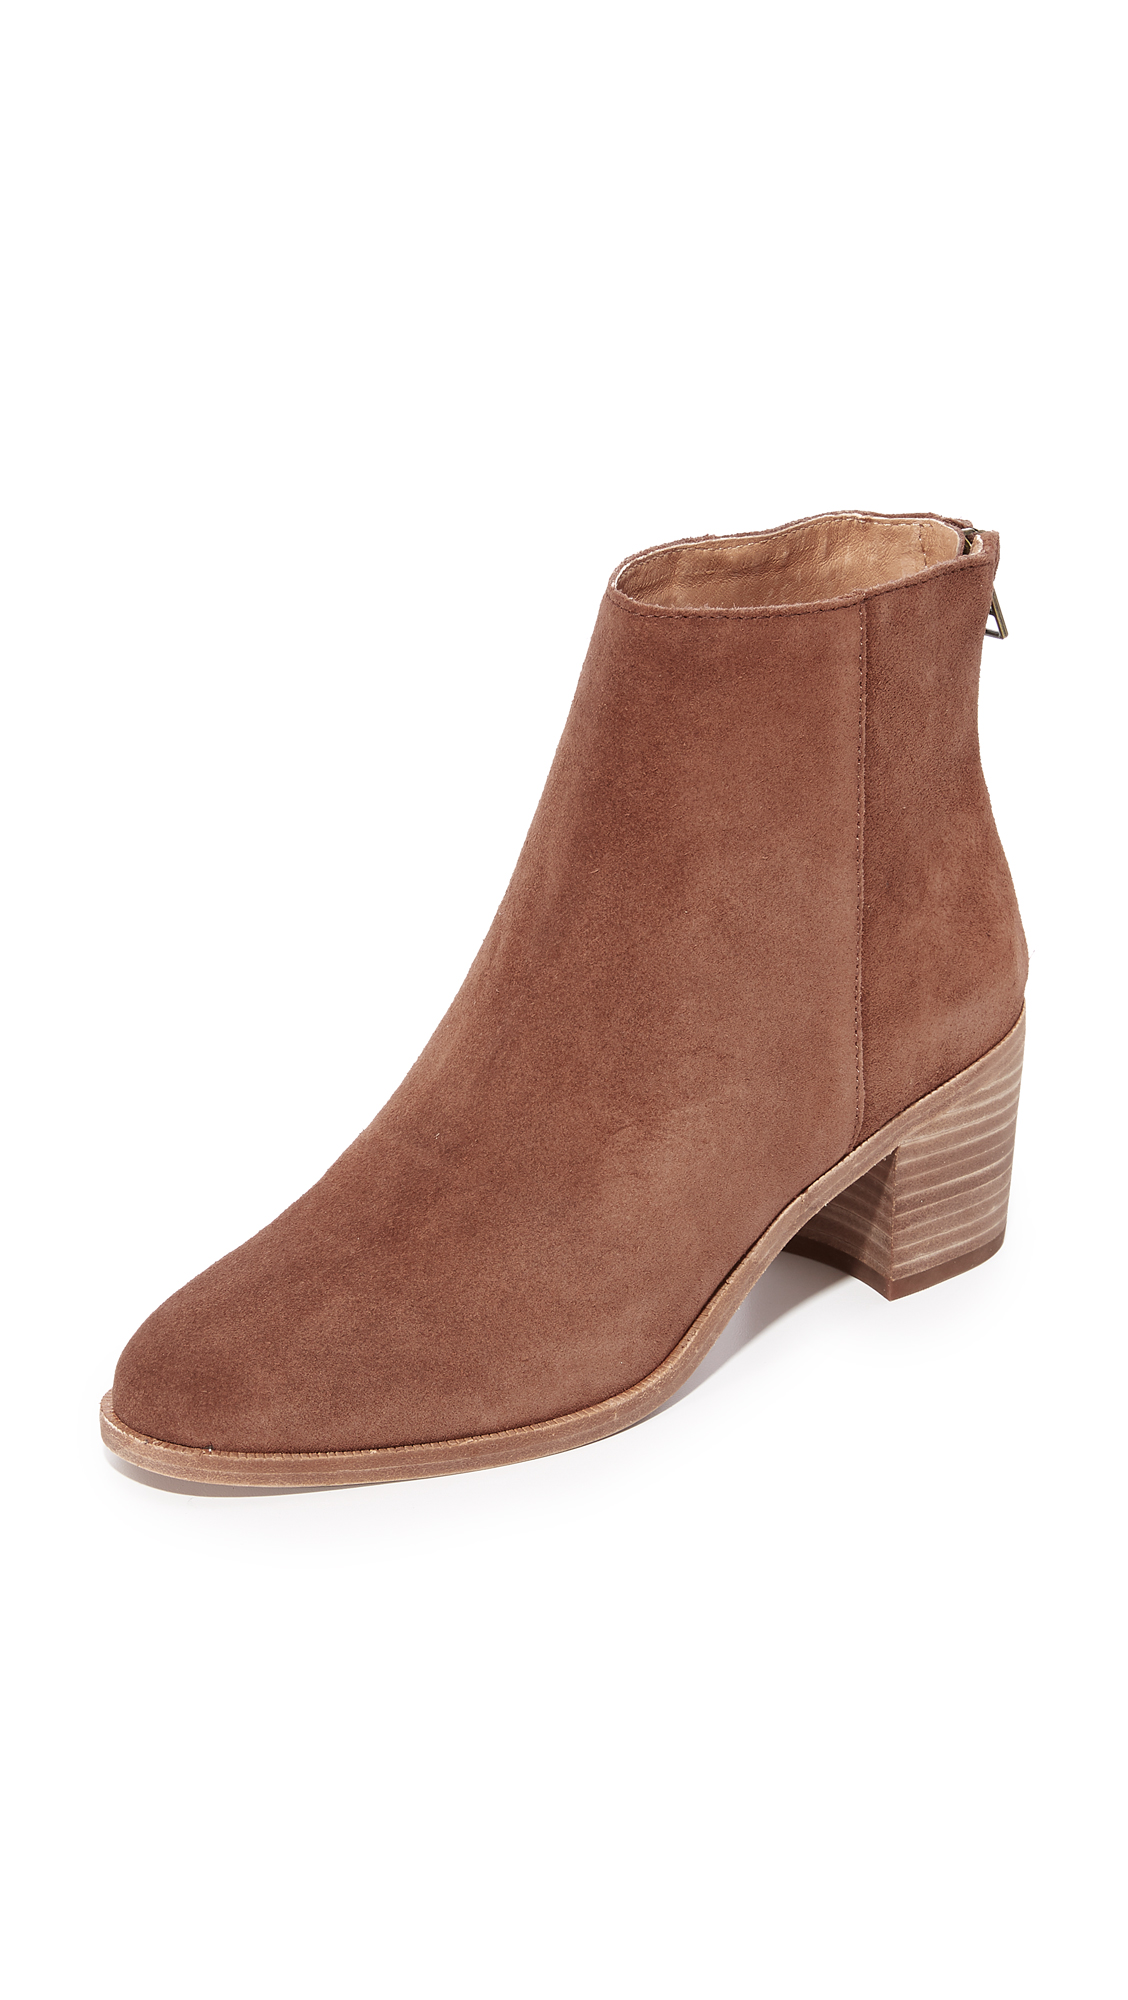 Madewell Pauline Boots - Rich Brown